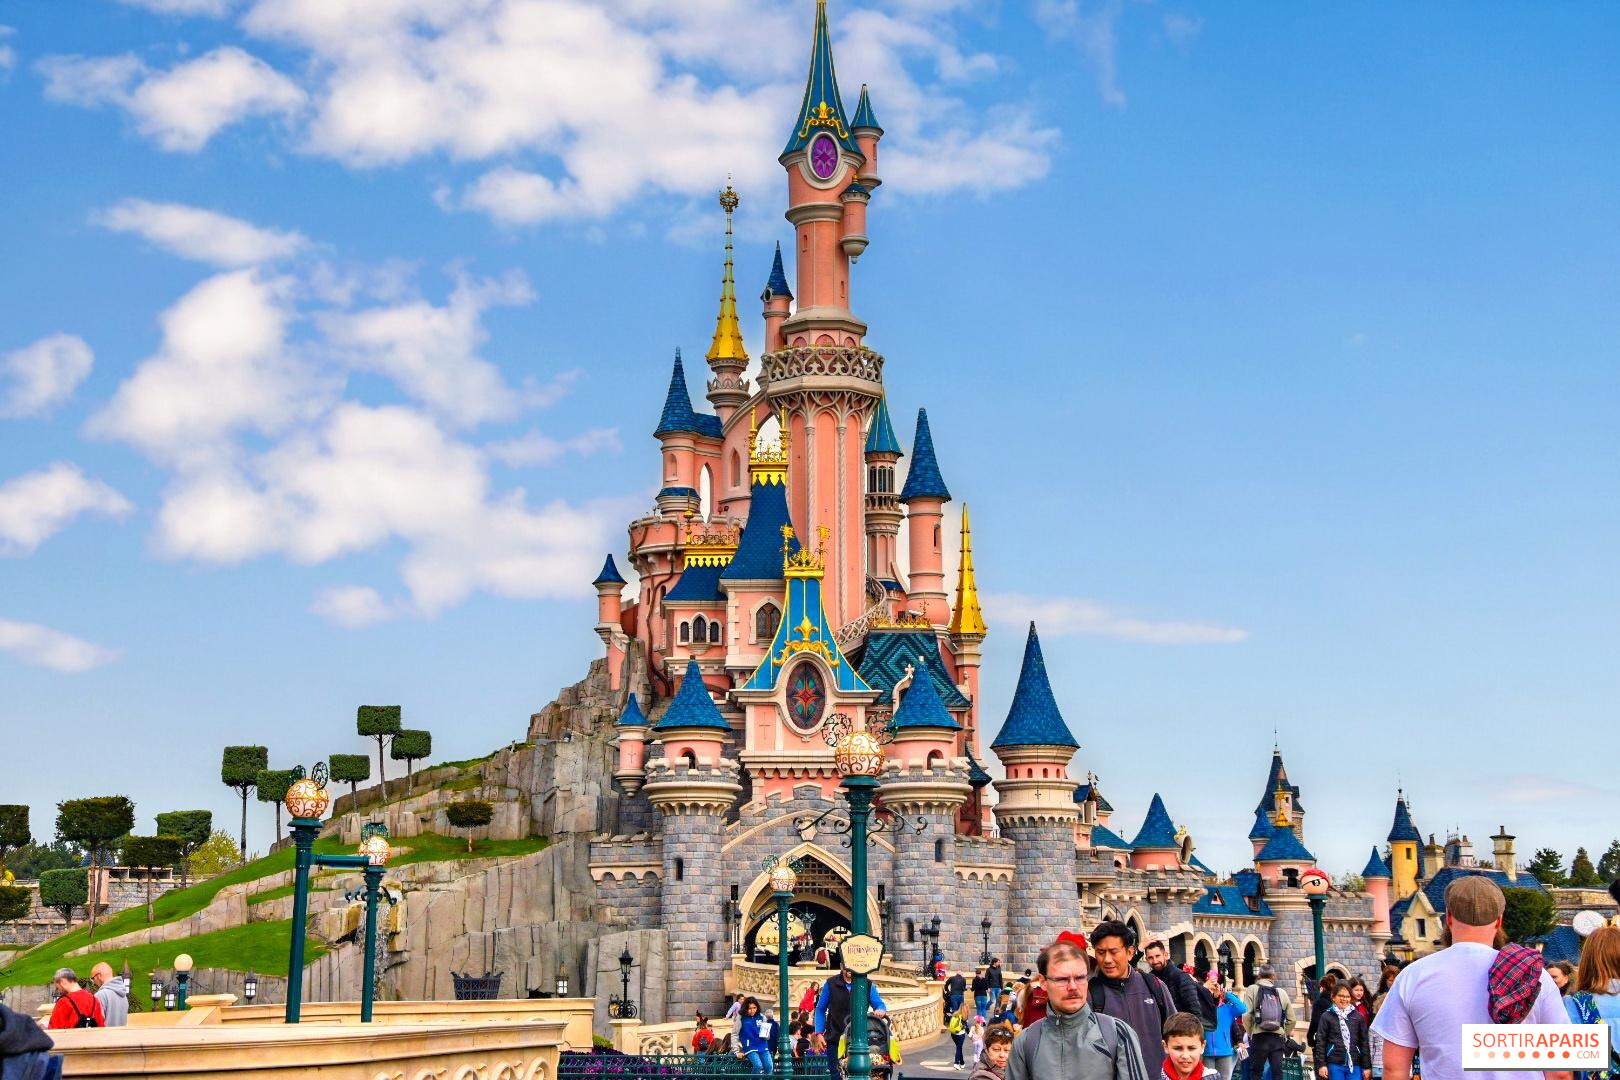 Disneyland Paris attraction